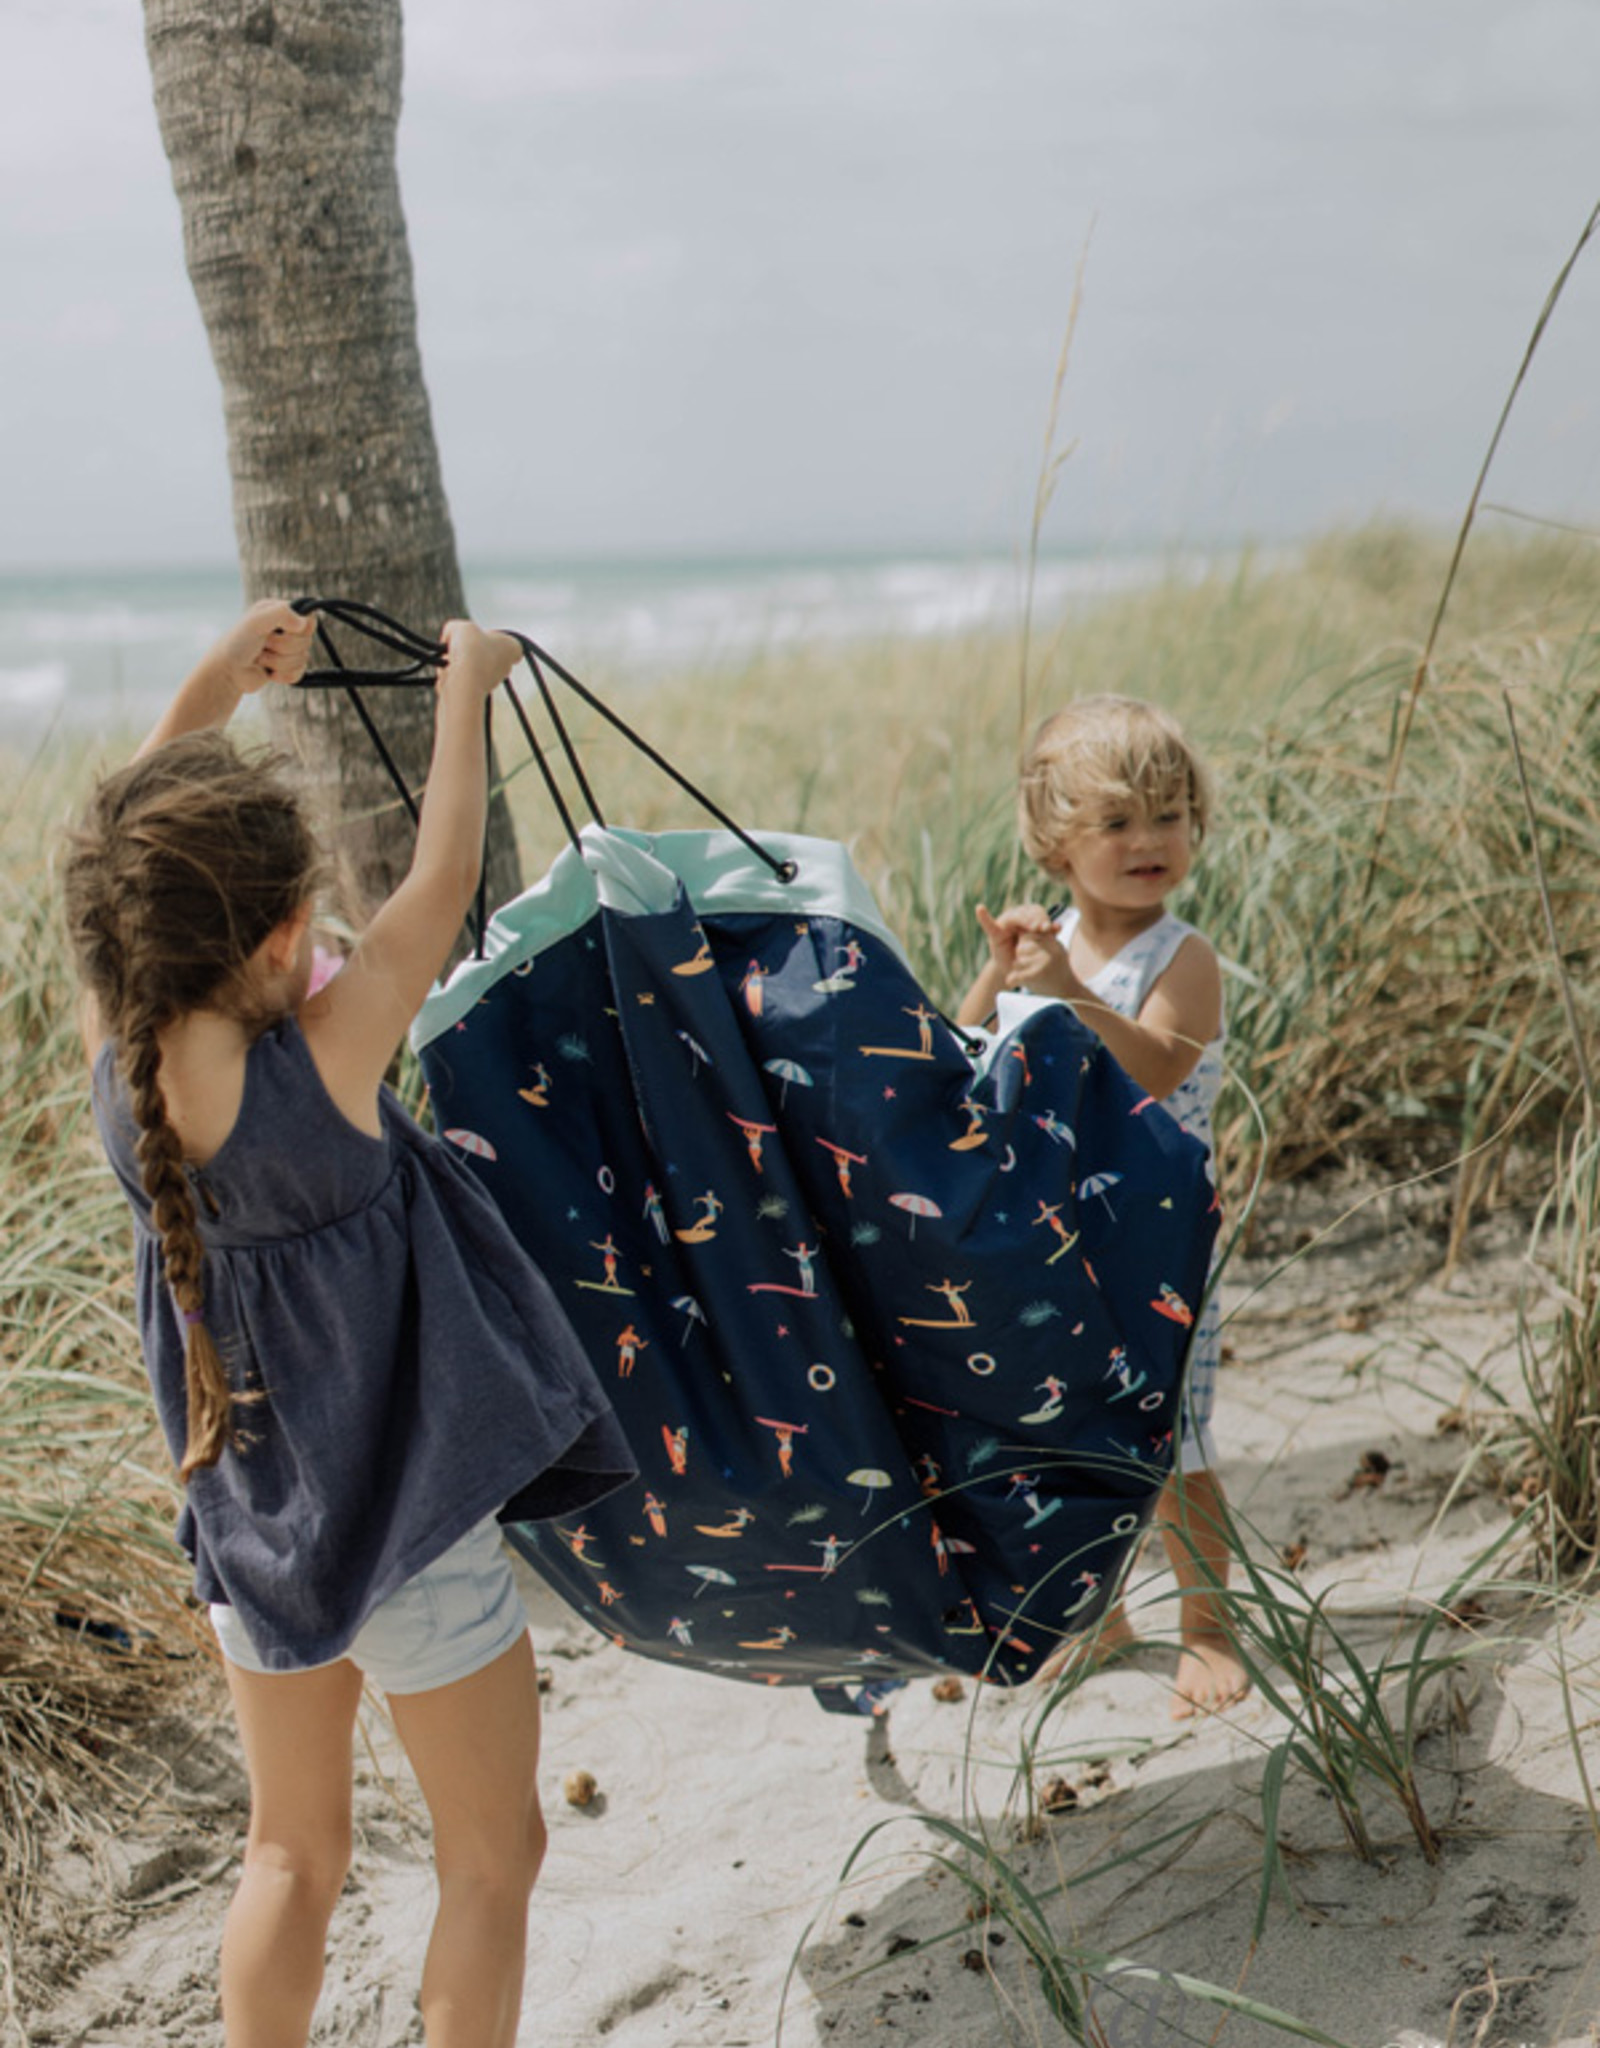 Play & Go Play & Go - OPBERGZAK EN SPEELMAT - OUTDOOR - SURF